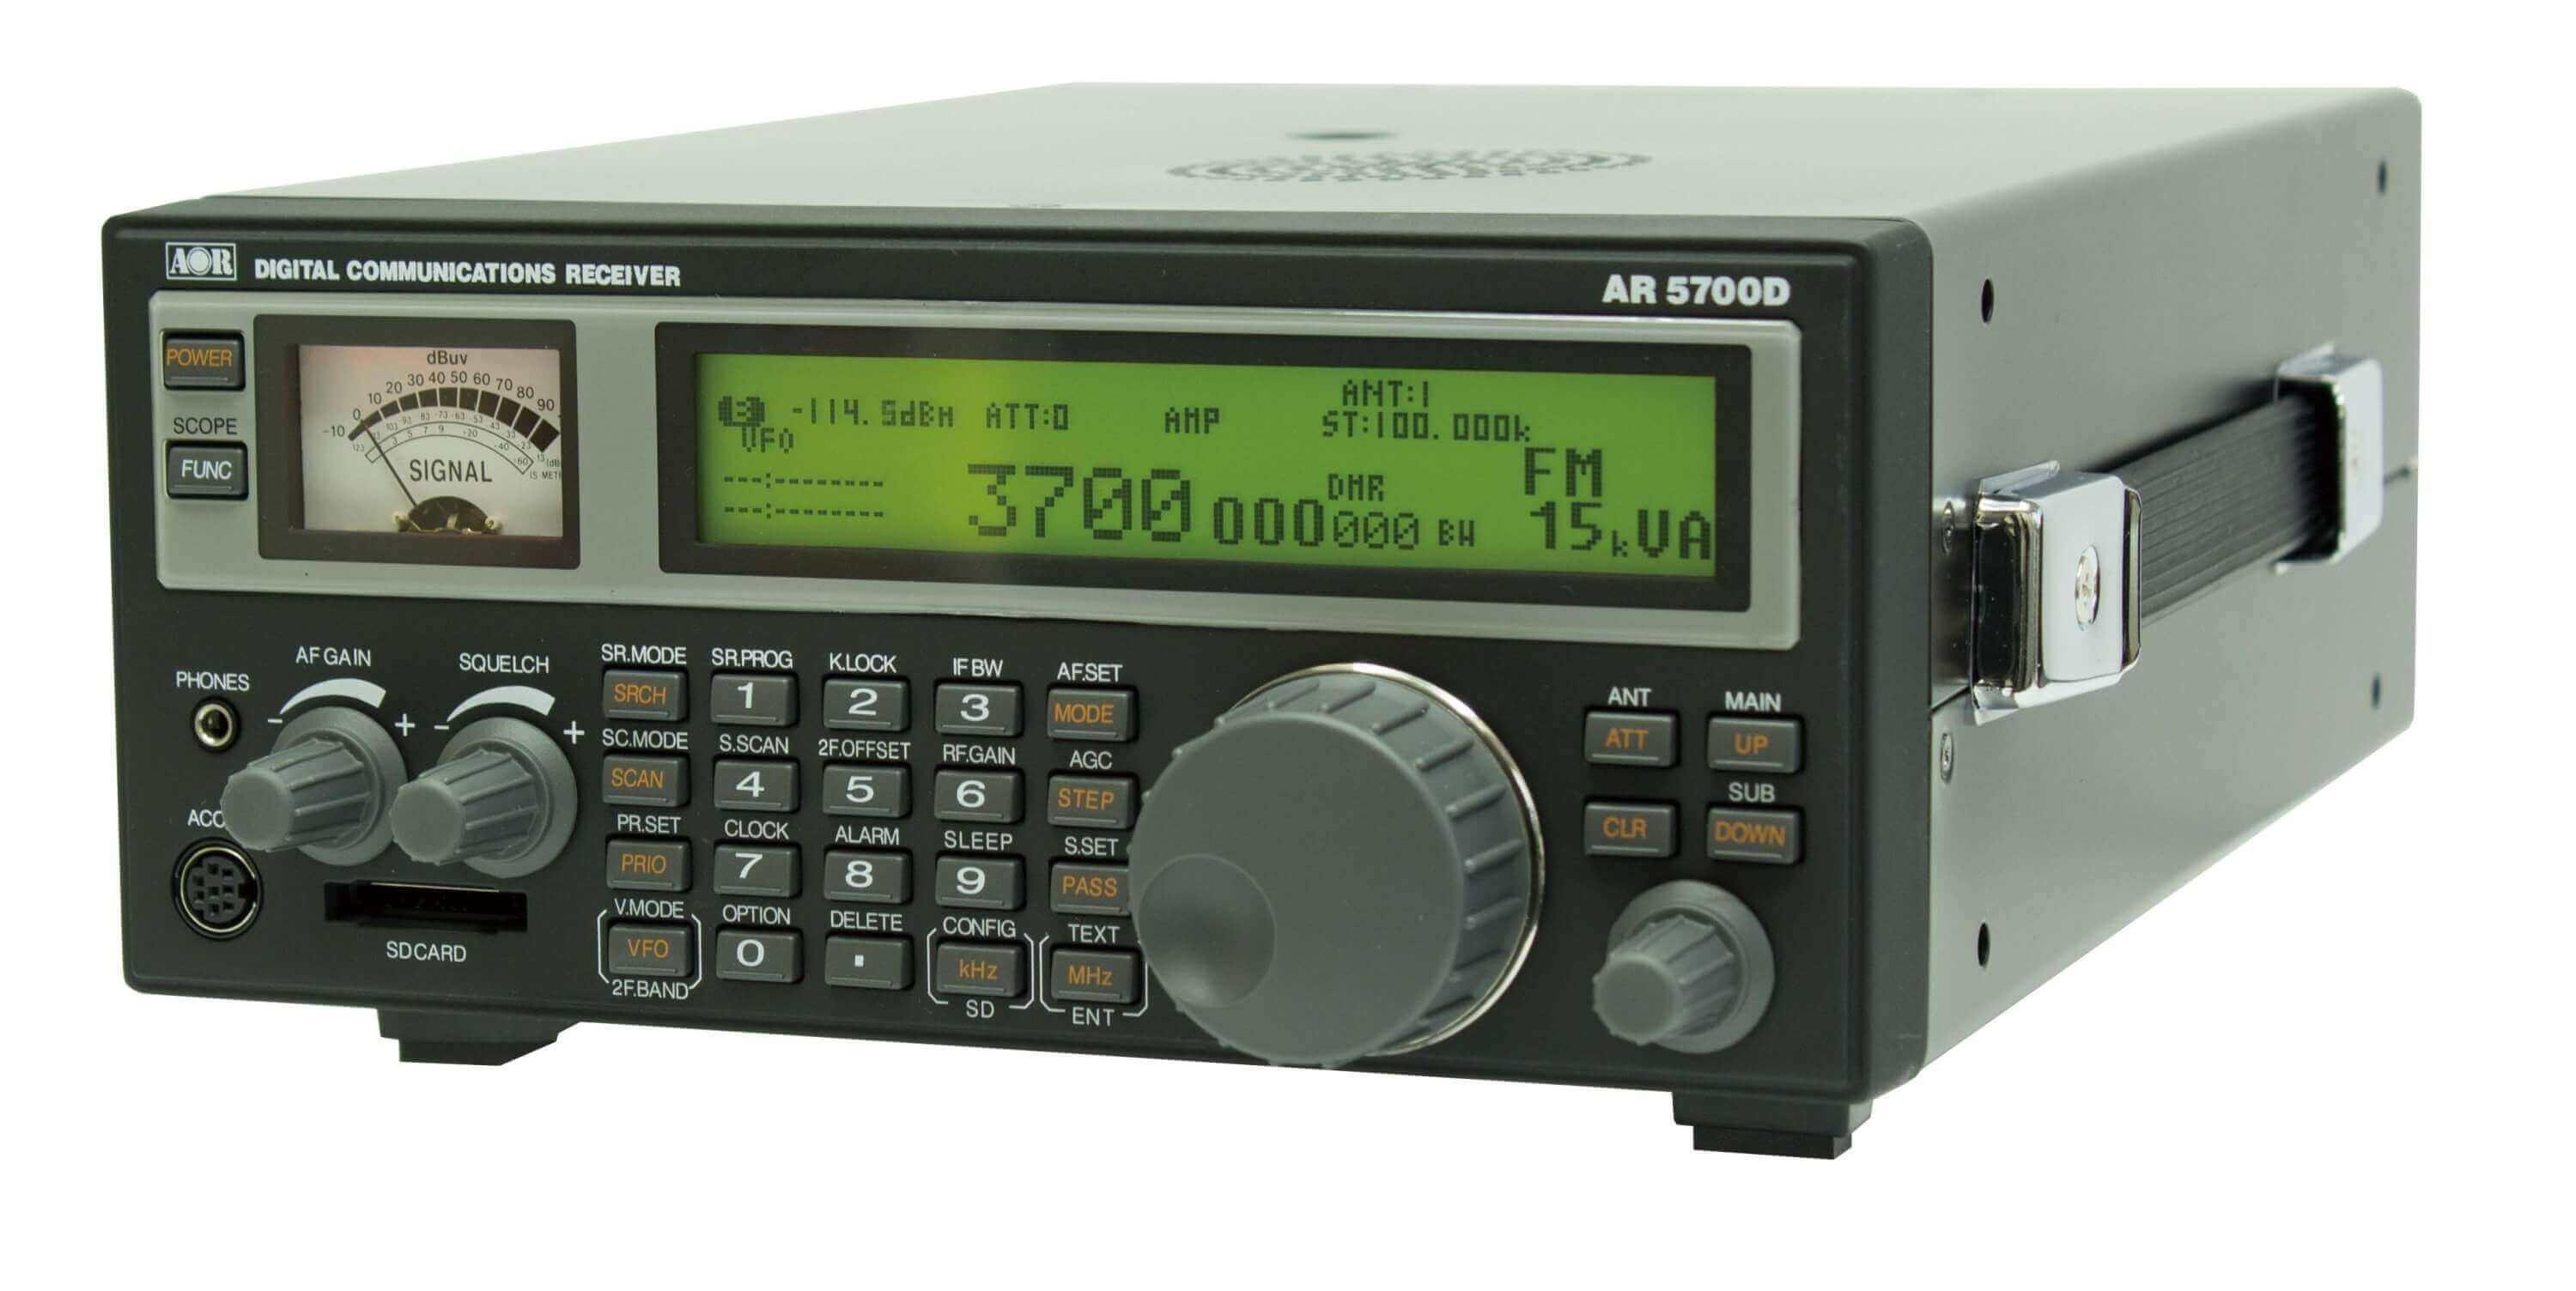 AOR AR5700D Digital Communications Receiver